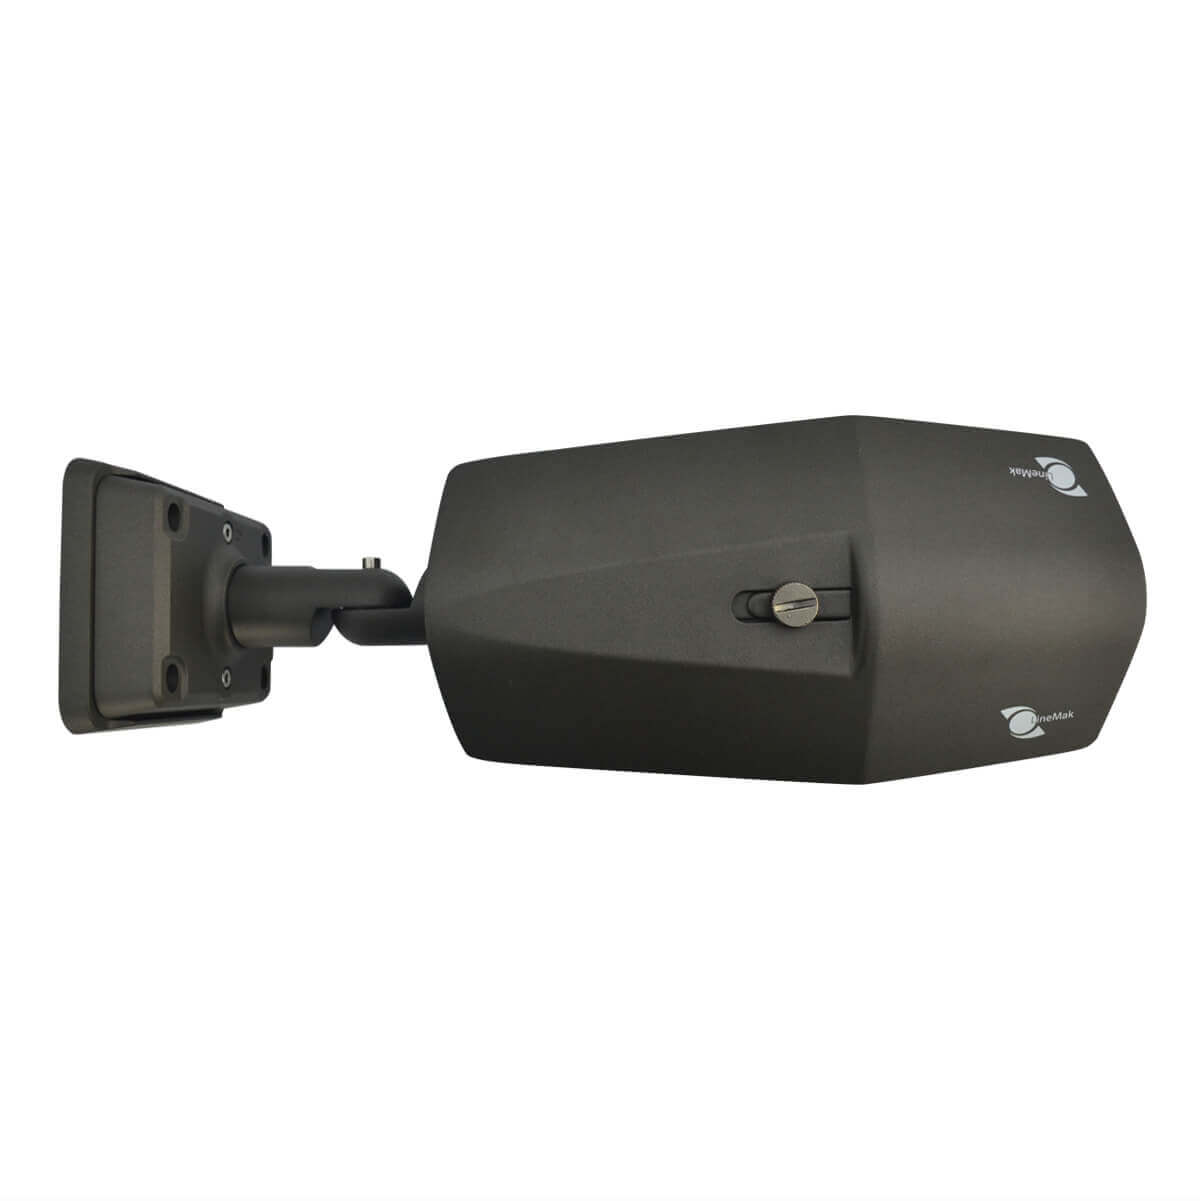 Camara Bazuca HD-CVI, Sensor CMOS de 1/3, 1Mp, 42 LED, 42 LED, IP66